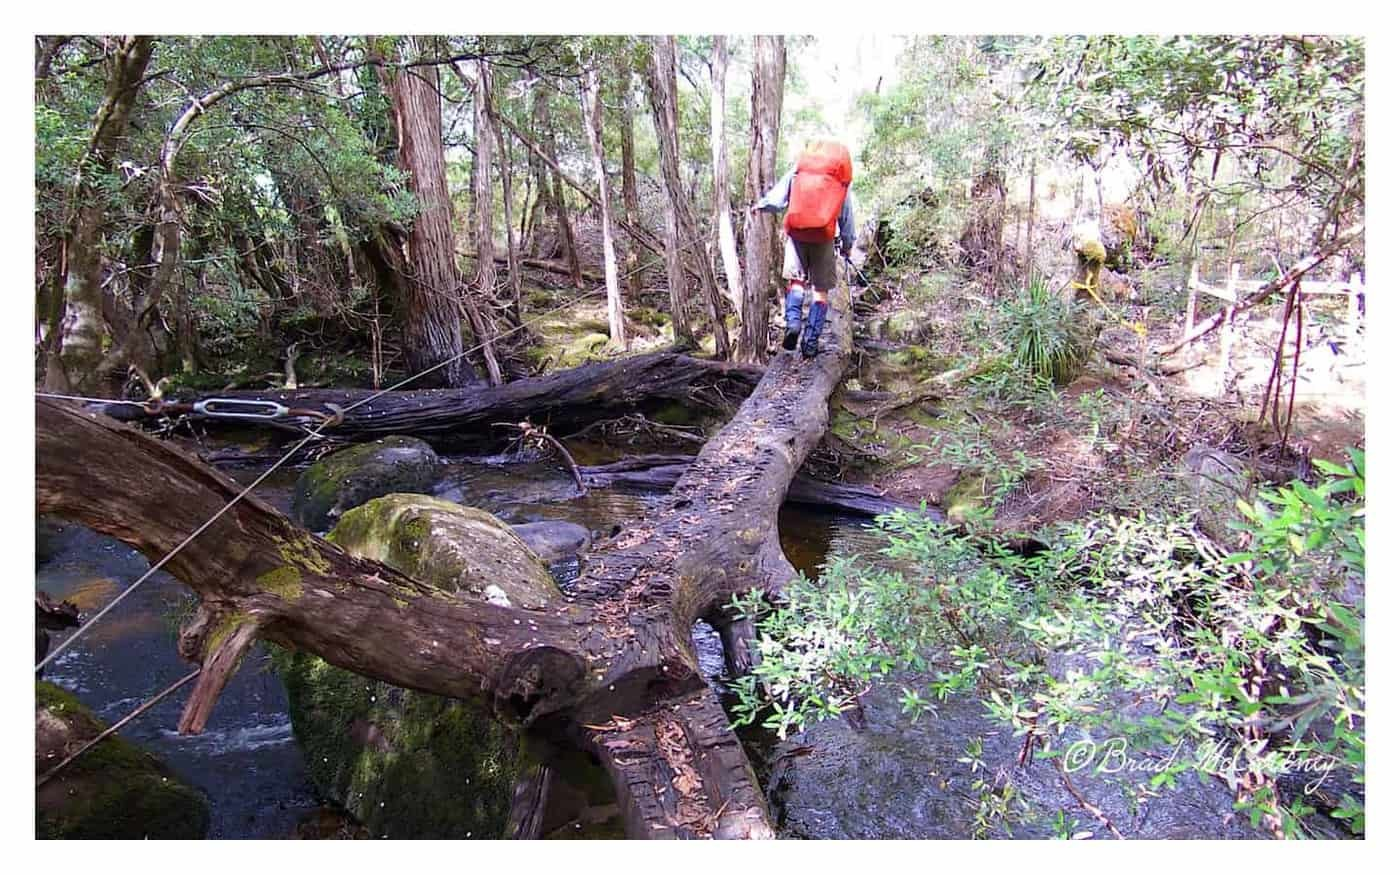 Doug crossing a river on route in the Pine Valley